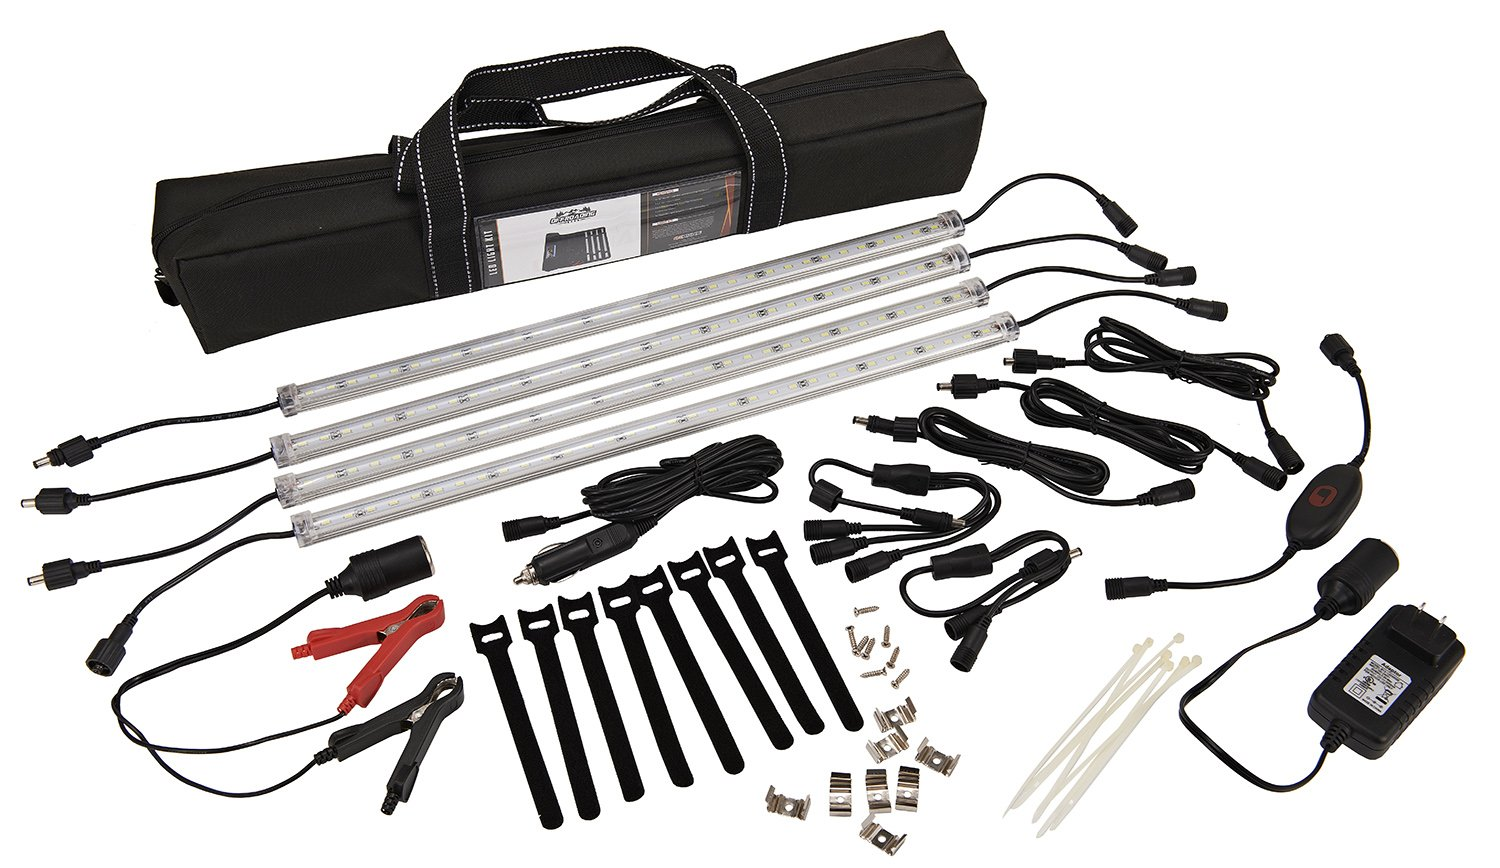 13 Piece LED Strip Lighting Kit, Portable and for Camping/Patio/RVs/Outdoor,